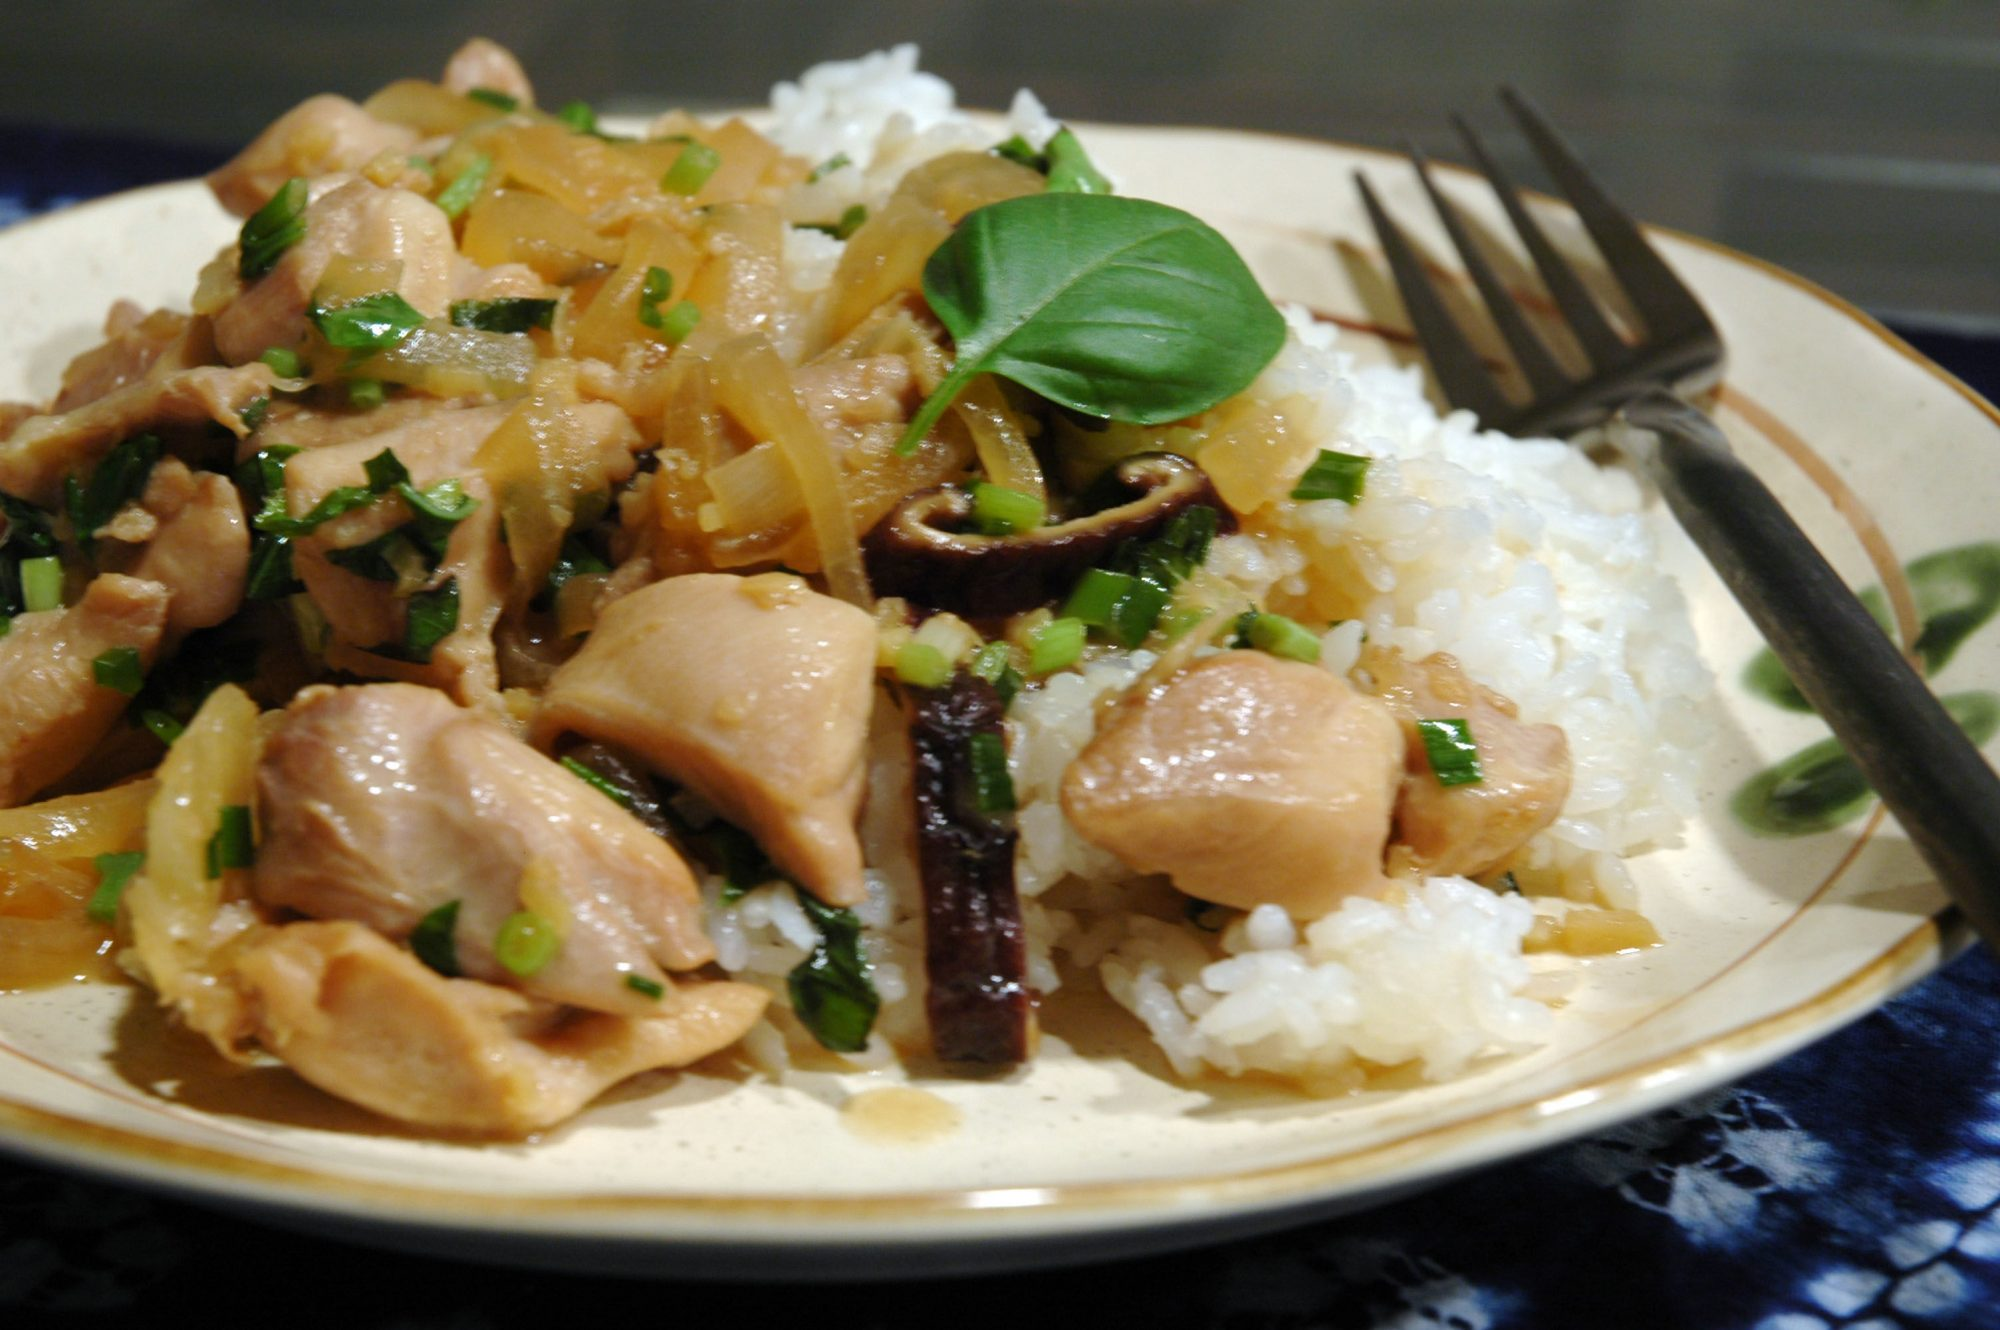 """Chicken strips, mushrooms, onions, ginger, basil, and garlic combine with a coconut milk sauce starring soy sauce, rice wine vinegar, fish sauce, and red pepper flakes. Serve over jasmine rice. """"Absolutely delicious and much better than the chicken basil we get from the local restaurant,"""" says Thanuja. """"I plan on adding more of the coconut milk/vinegar/red pepper flake mixture next time so get more sauce out of it.""""                           Related:"""